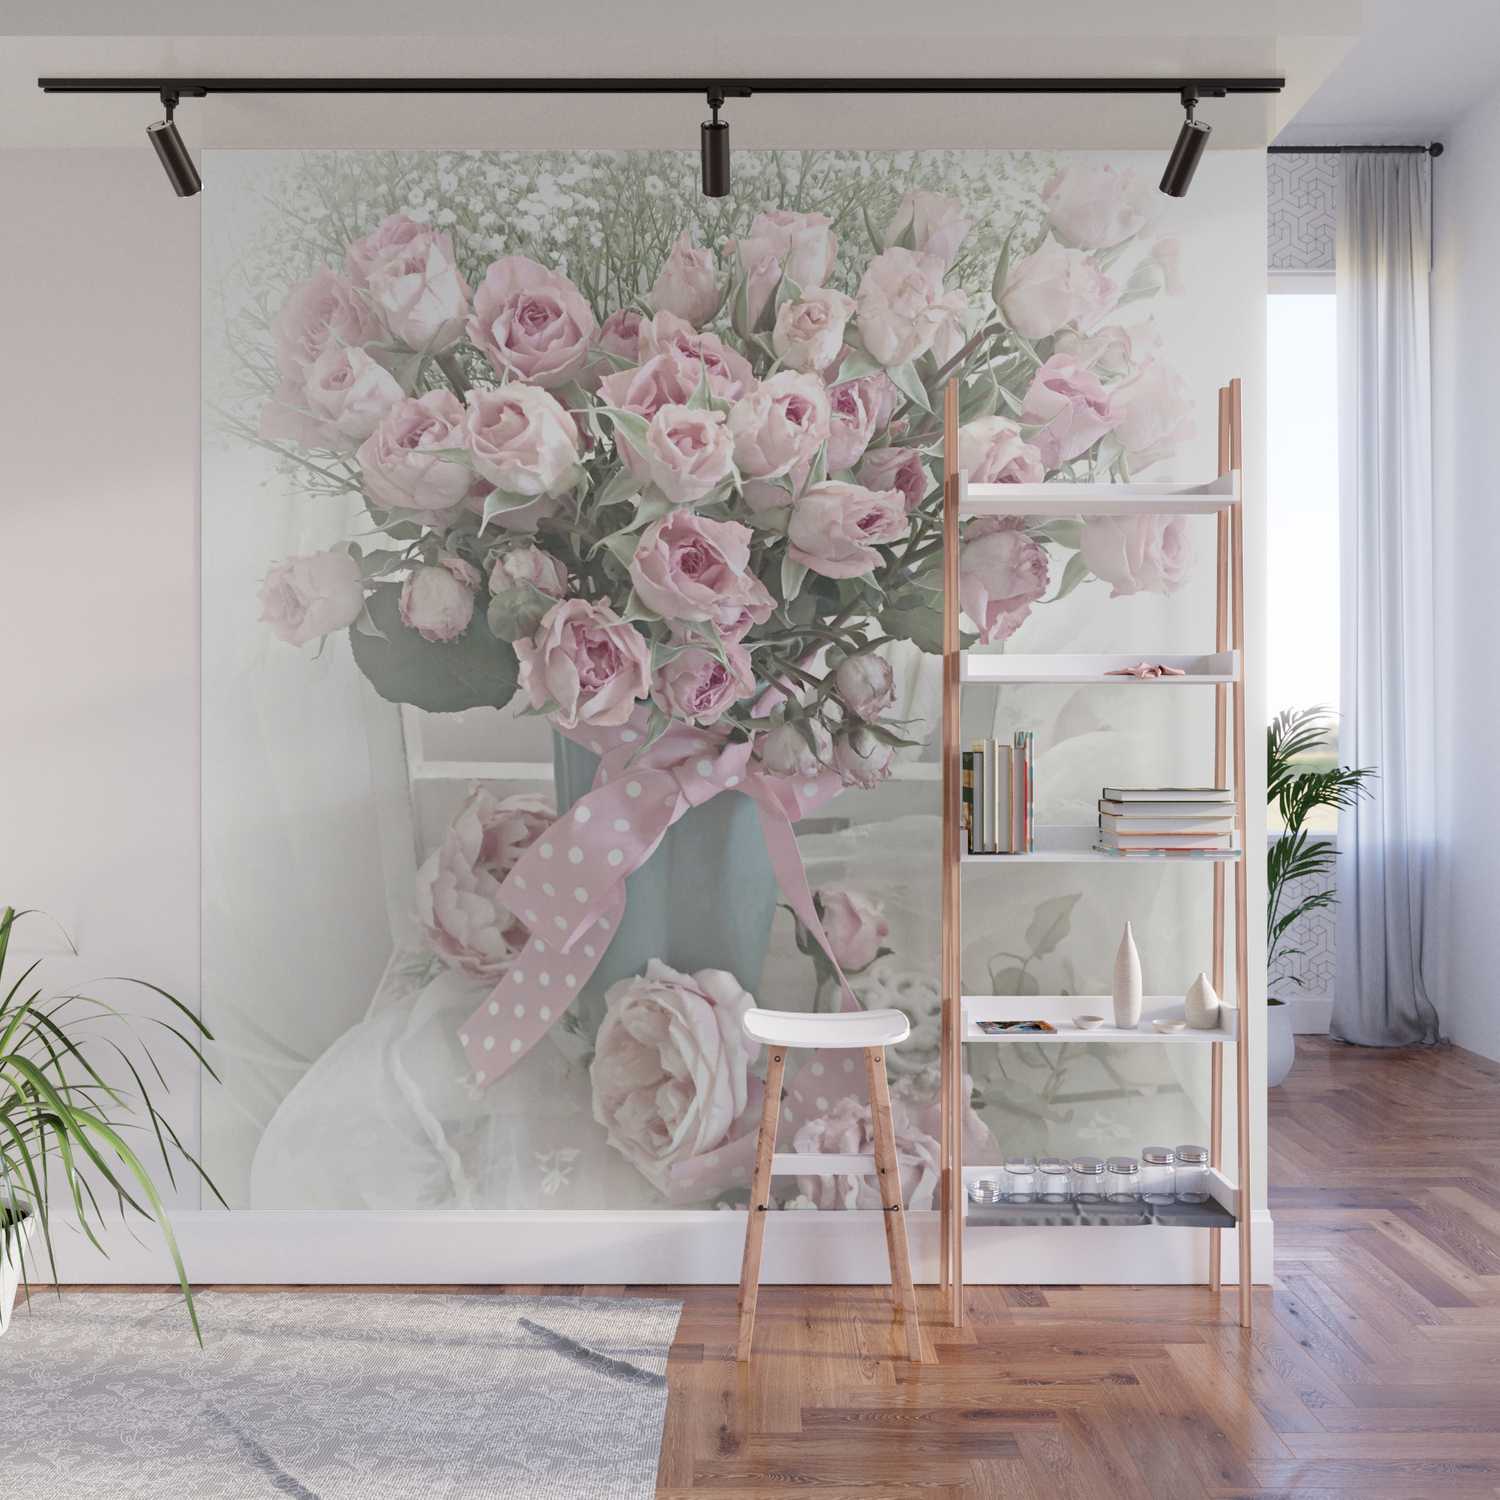 Pastel Roses In Vase   Shabby Chic Roses Pink Aqua Floral Print Home Decor  Wall Mural